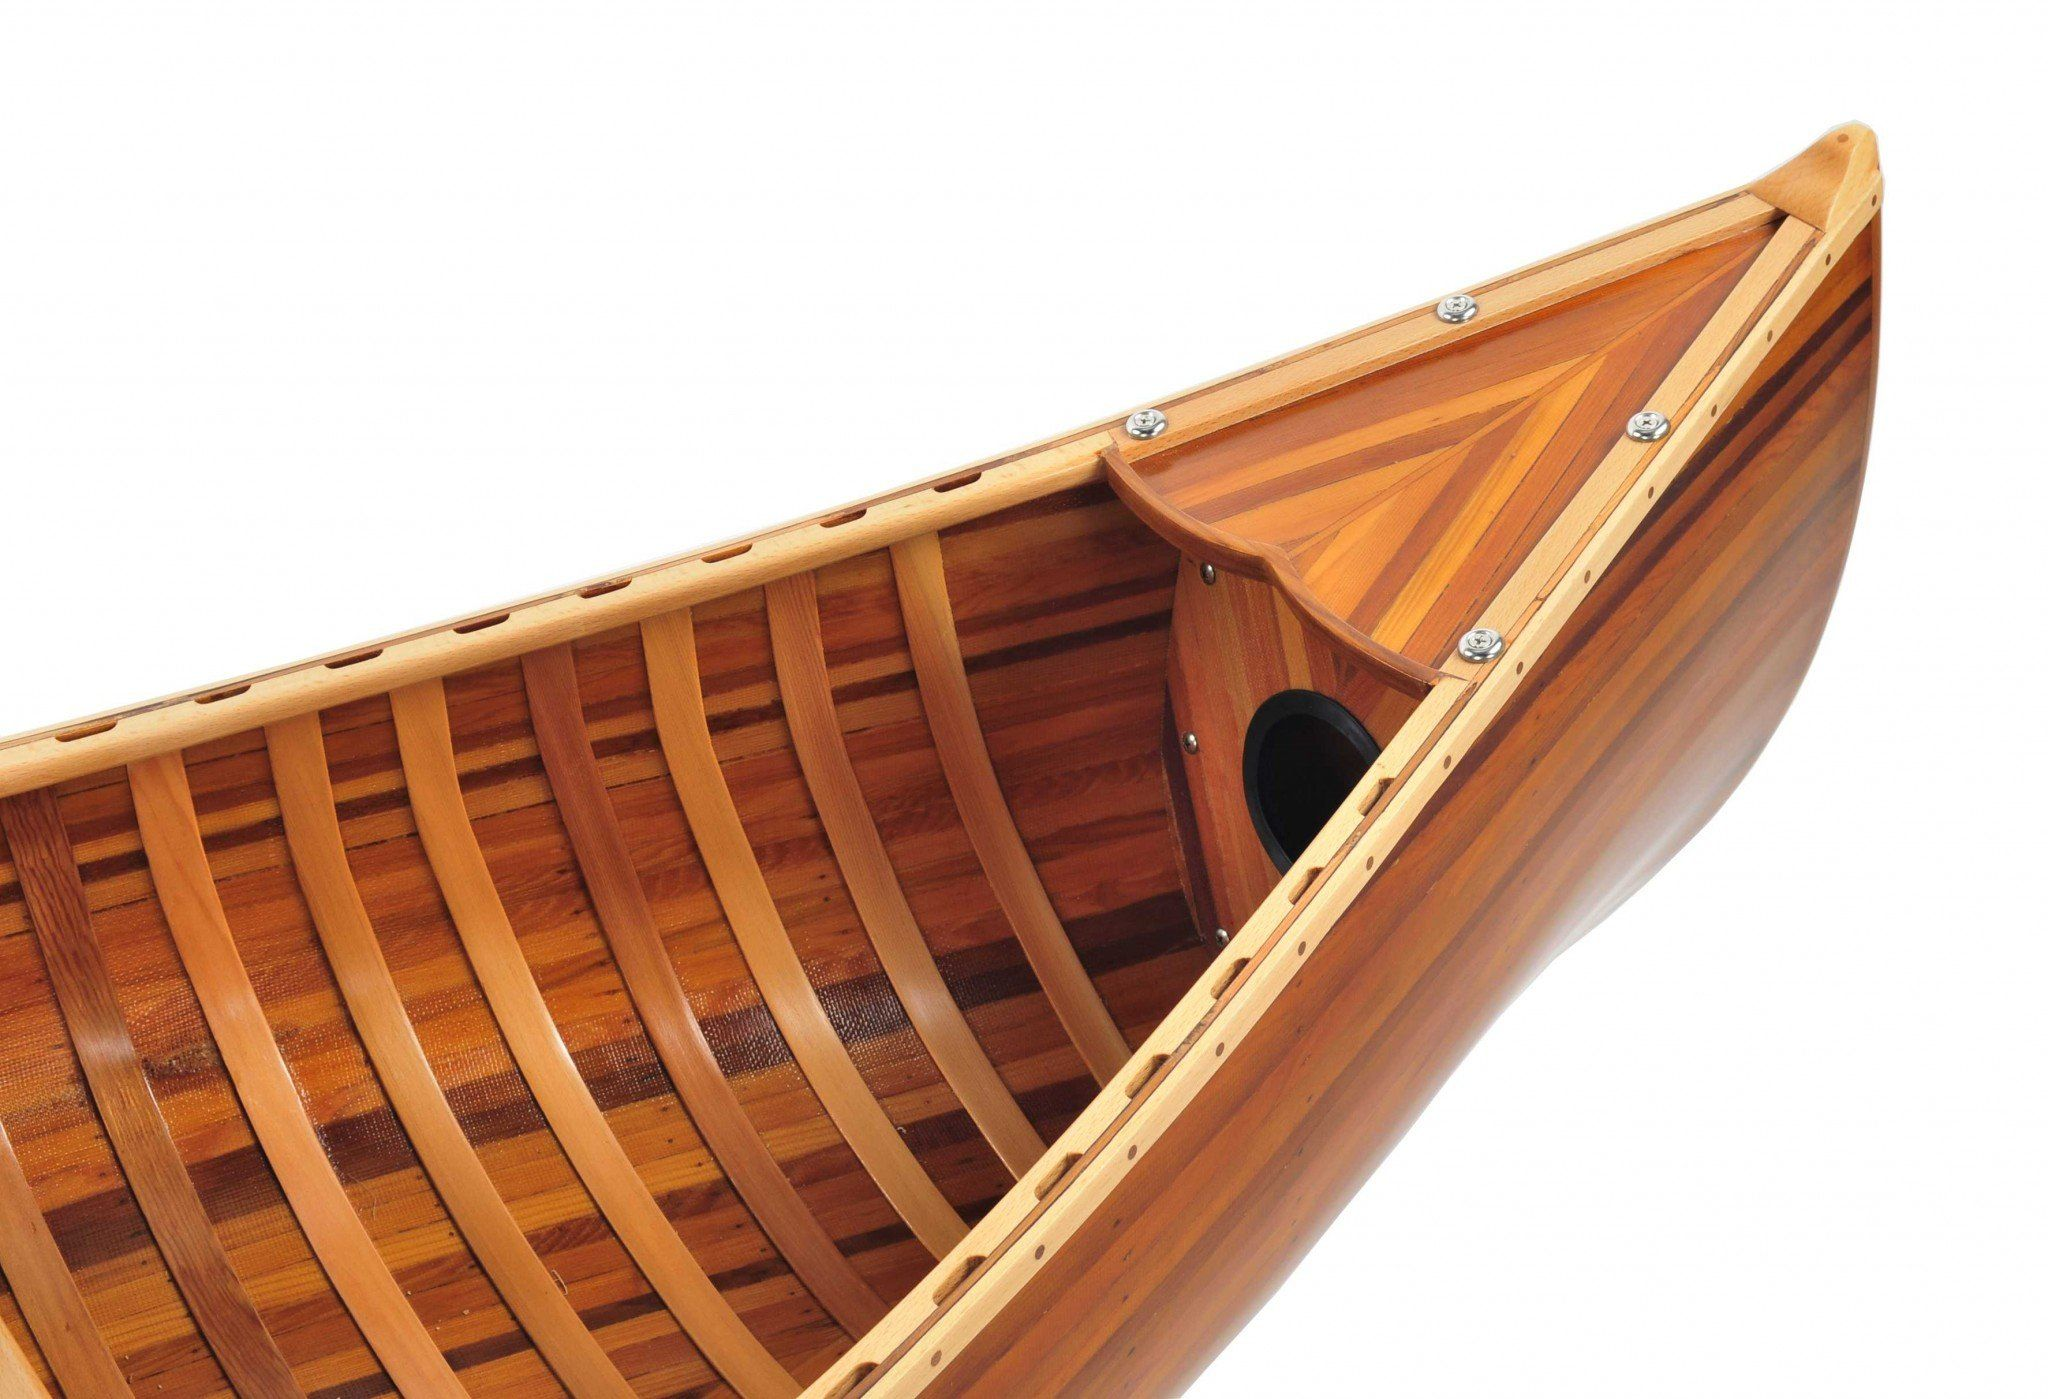 20.25″ x 70.5″ x 15″ Wooden Canoe With Ribs Matte Finish